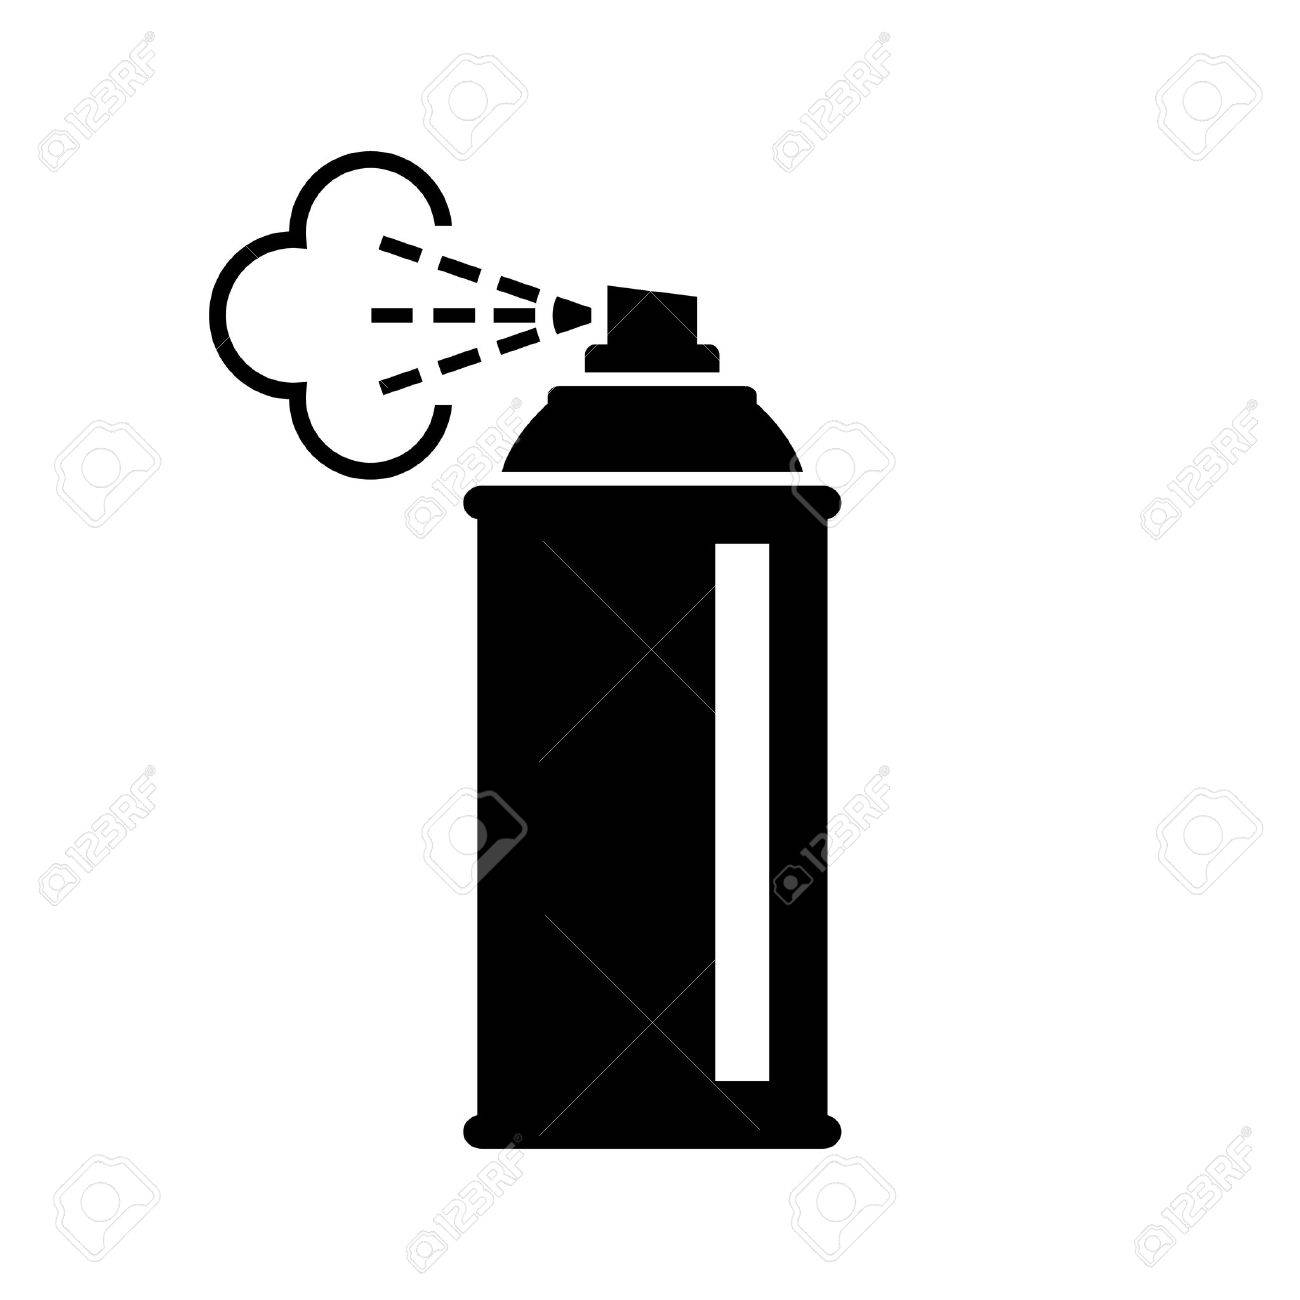 black spray can icon on white background royalty free cliparts rh 123rf com spray can splatter vector spray can vector free download